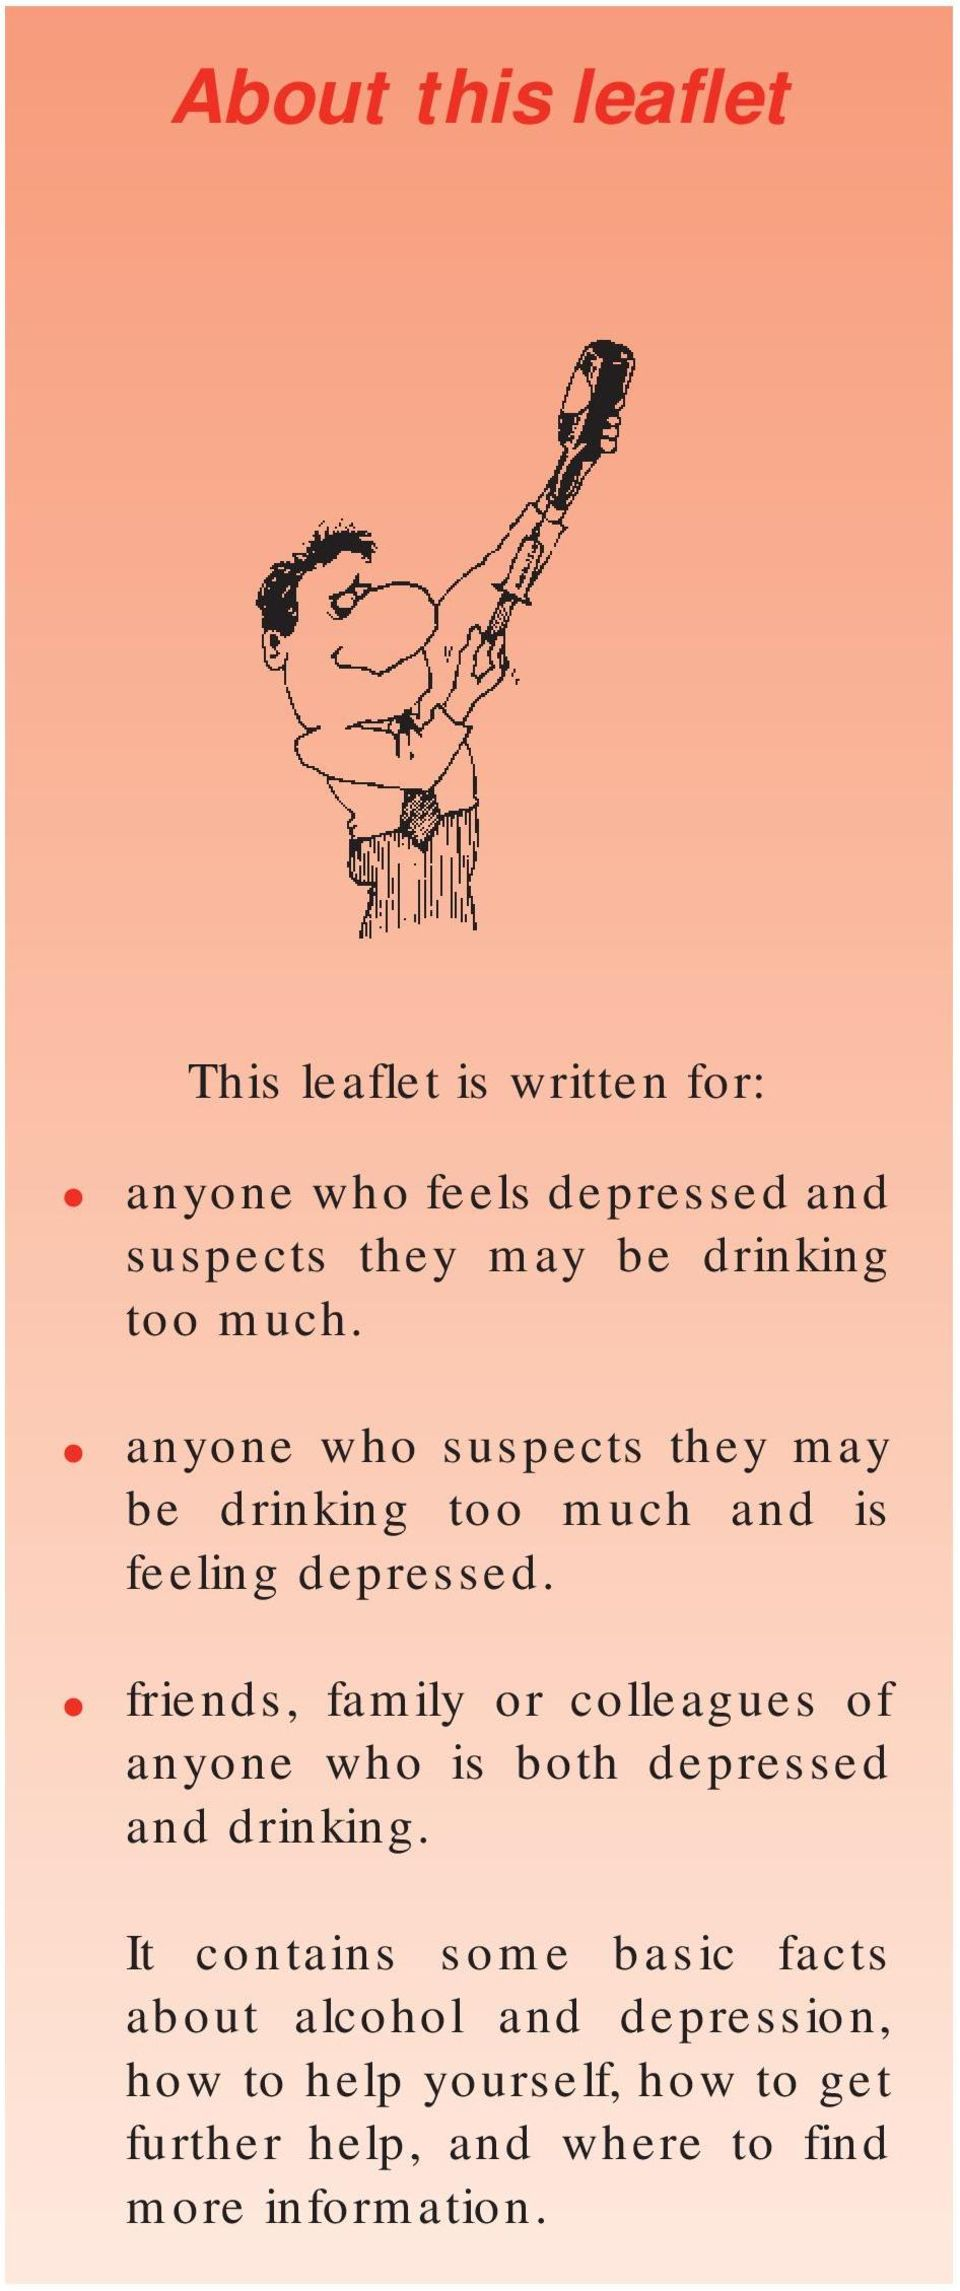 friends, family or colleagues of anyone who is both depressed and drinking.